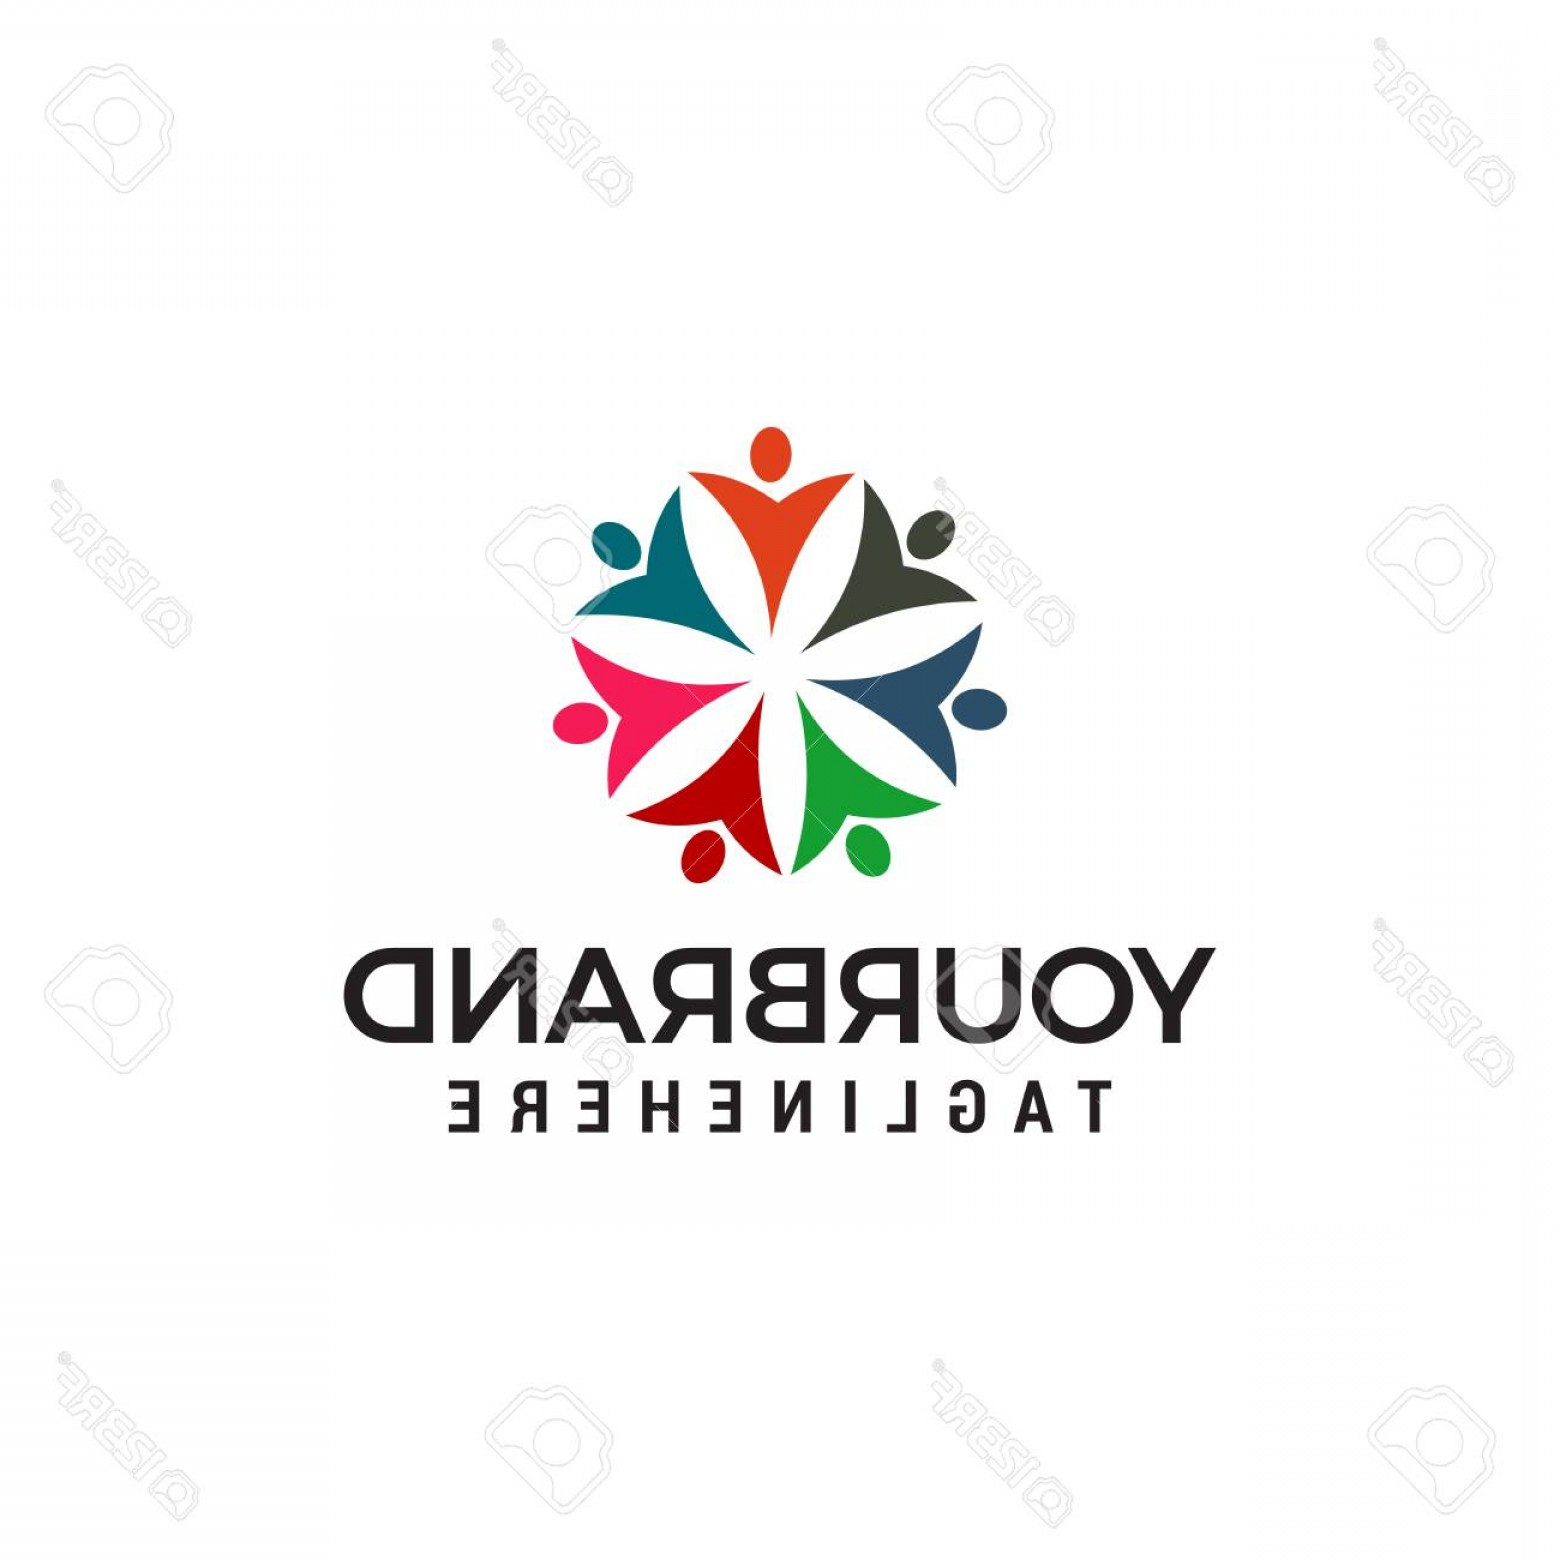 BBB Logo In Vector Form: Photostock Vector Community People Logo People Connect Logo Template Design